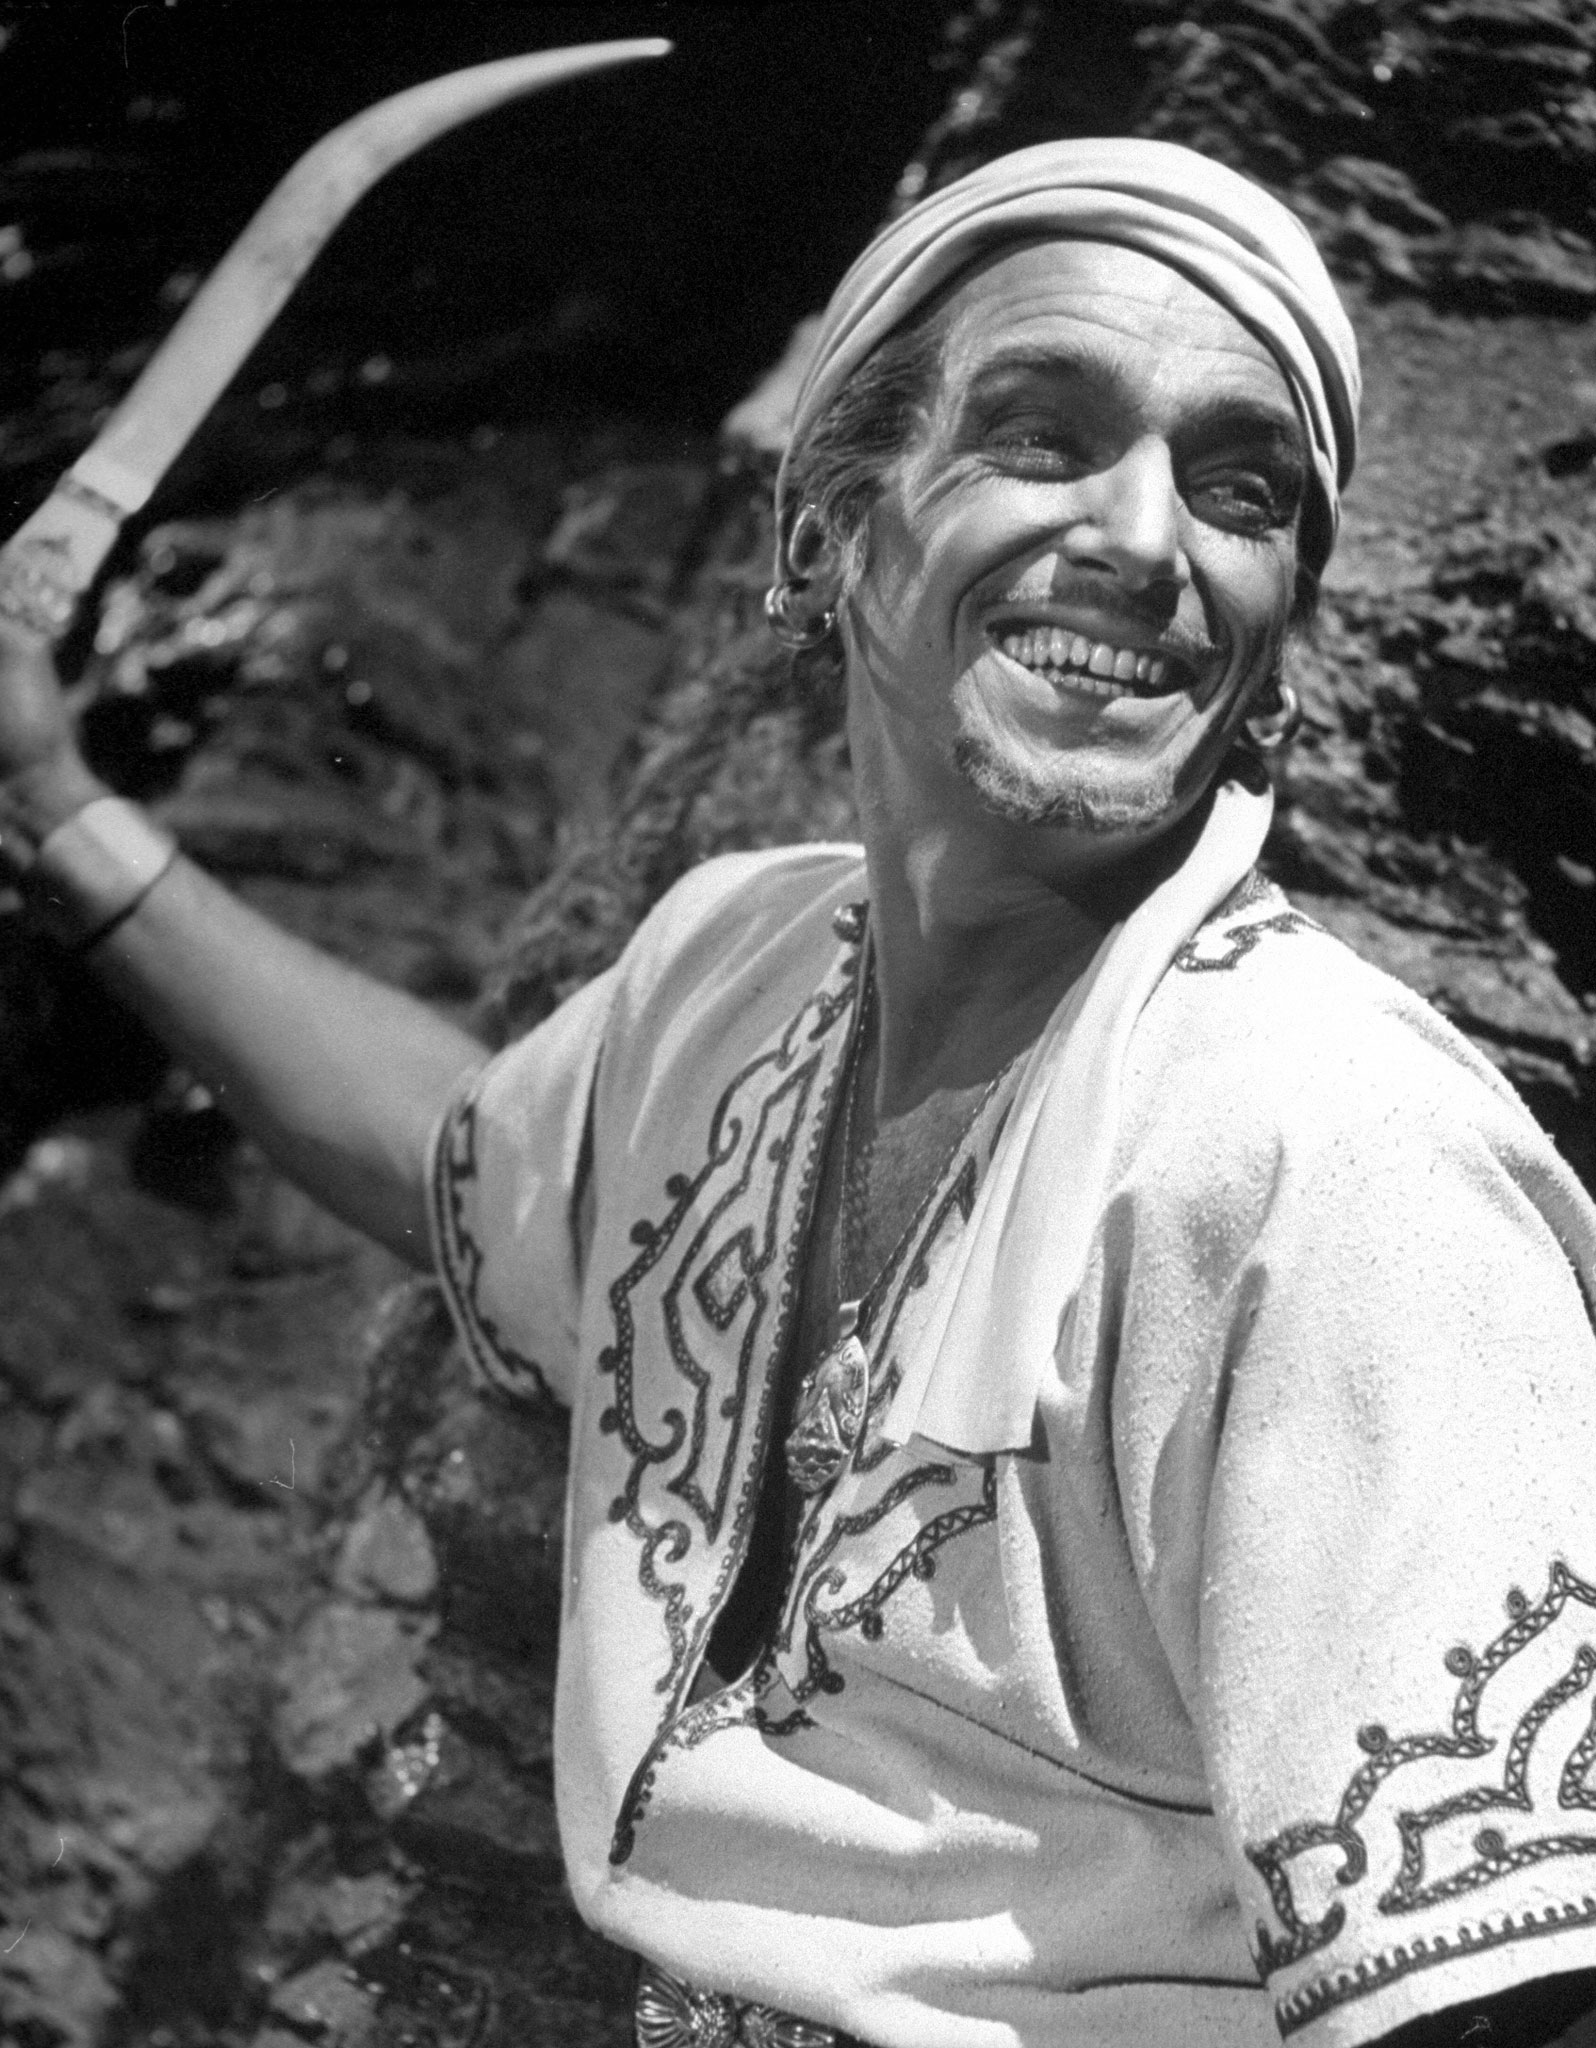 Douglas Fairbanks Jr., who was never nominated. Pictured in <i>Sinbad</i>, 1946.